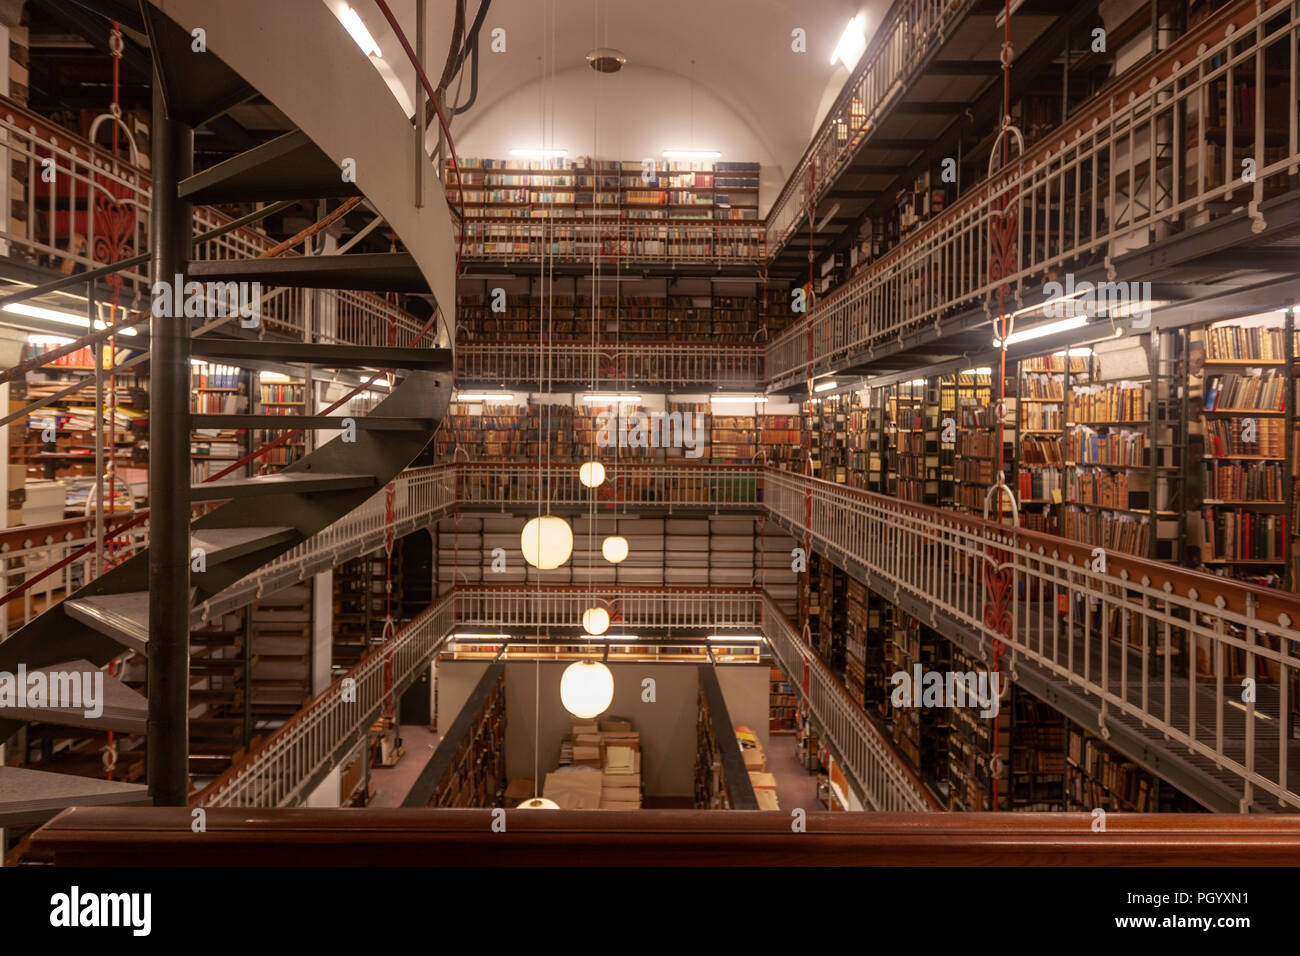 Spiral Staircase and books shelf in the in the Royal Danish Library The old building, The Black Diamond library, Copenhagen, Denmark. Stock Photo